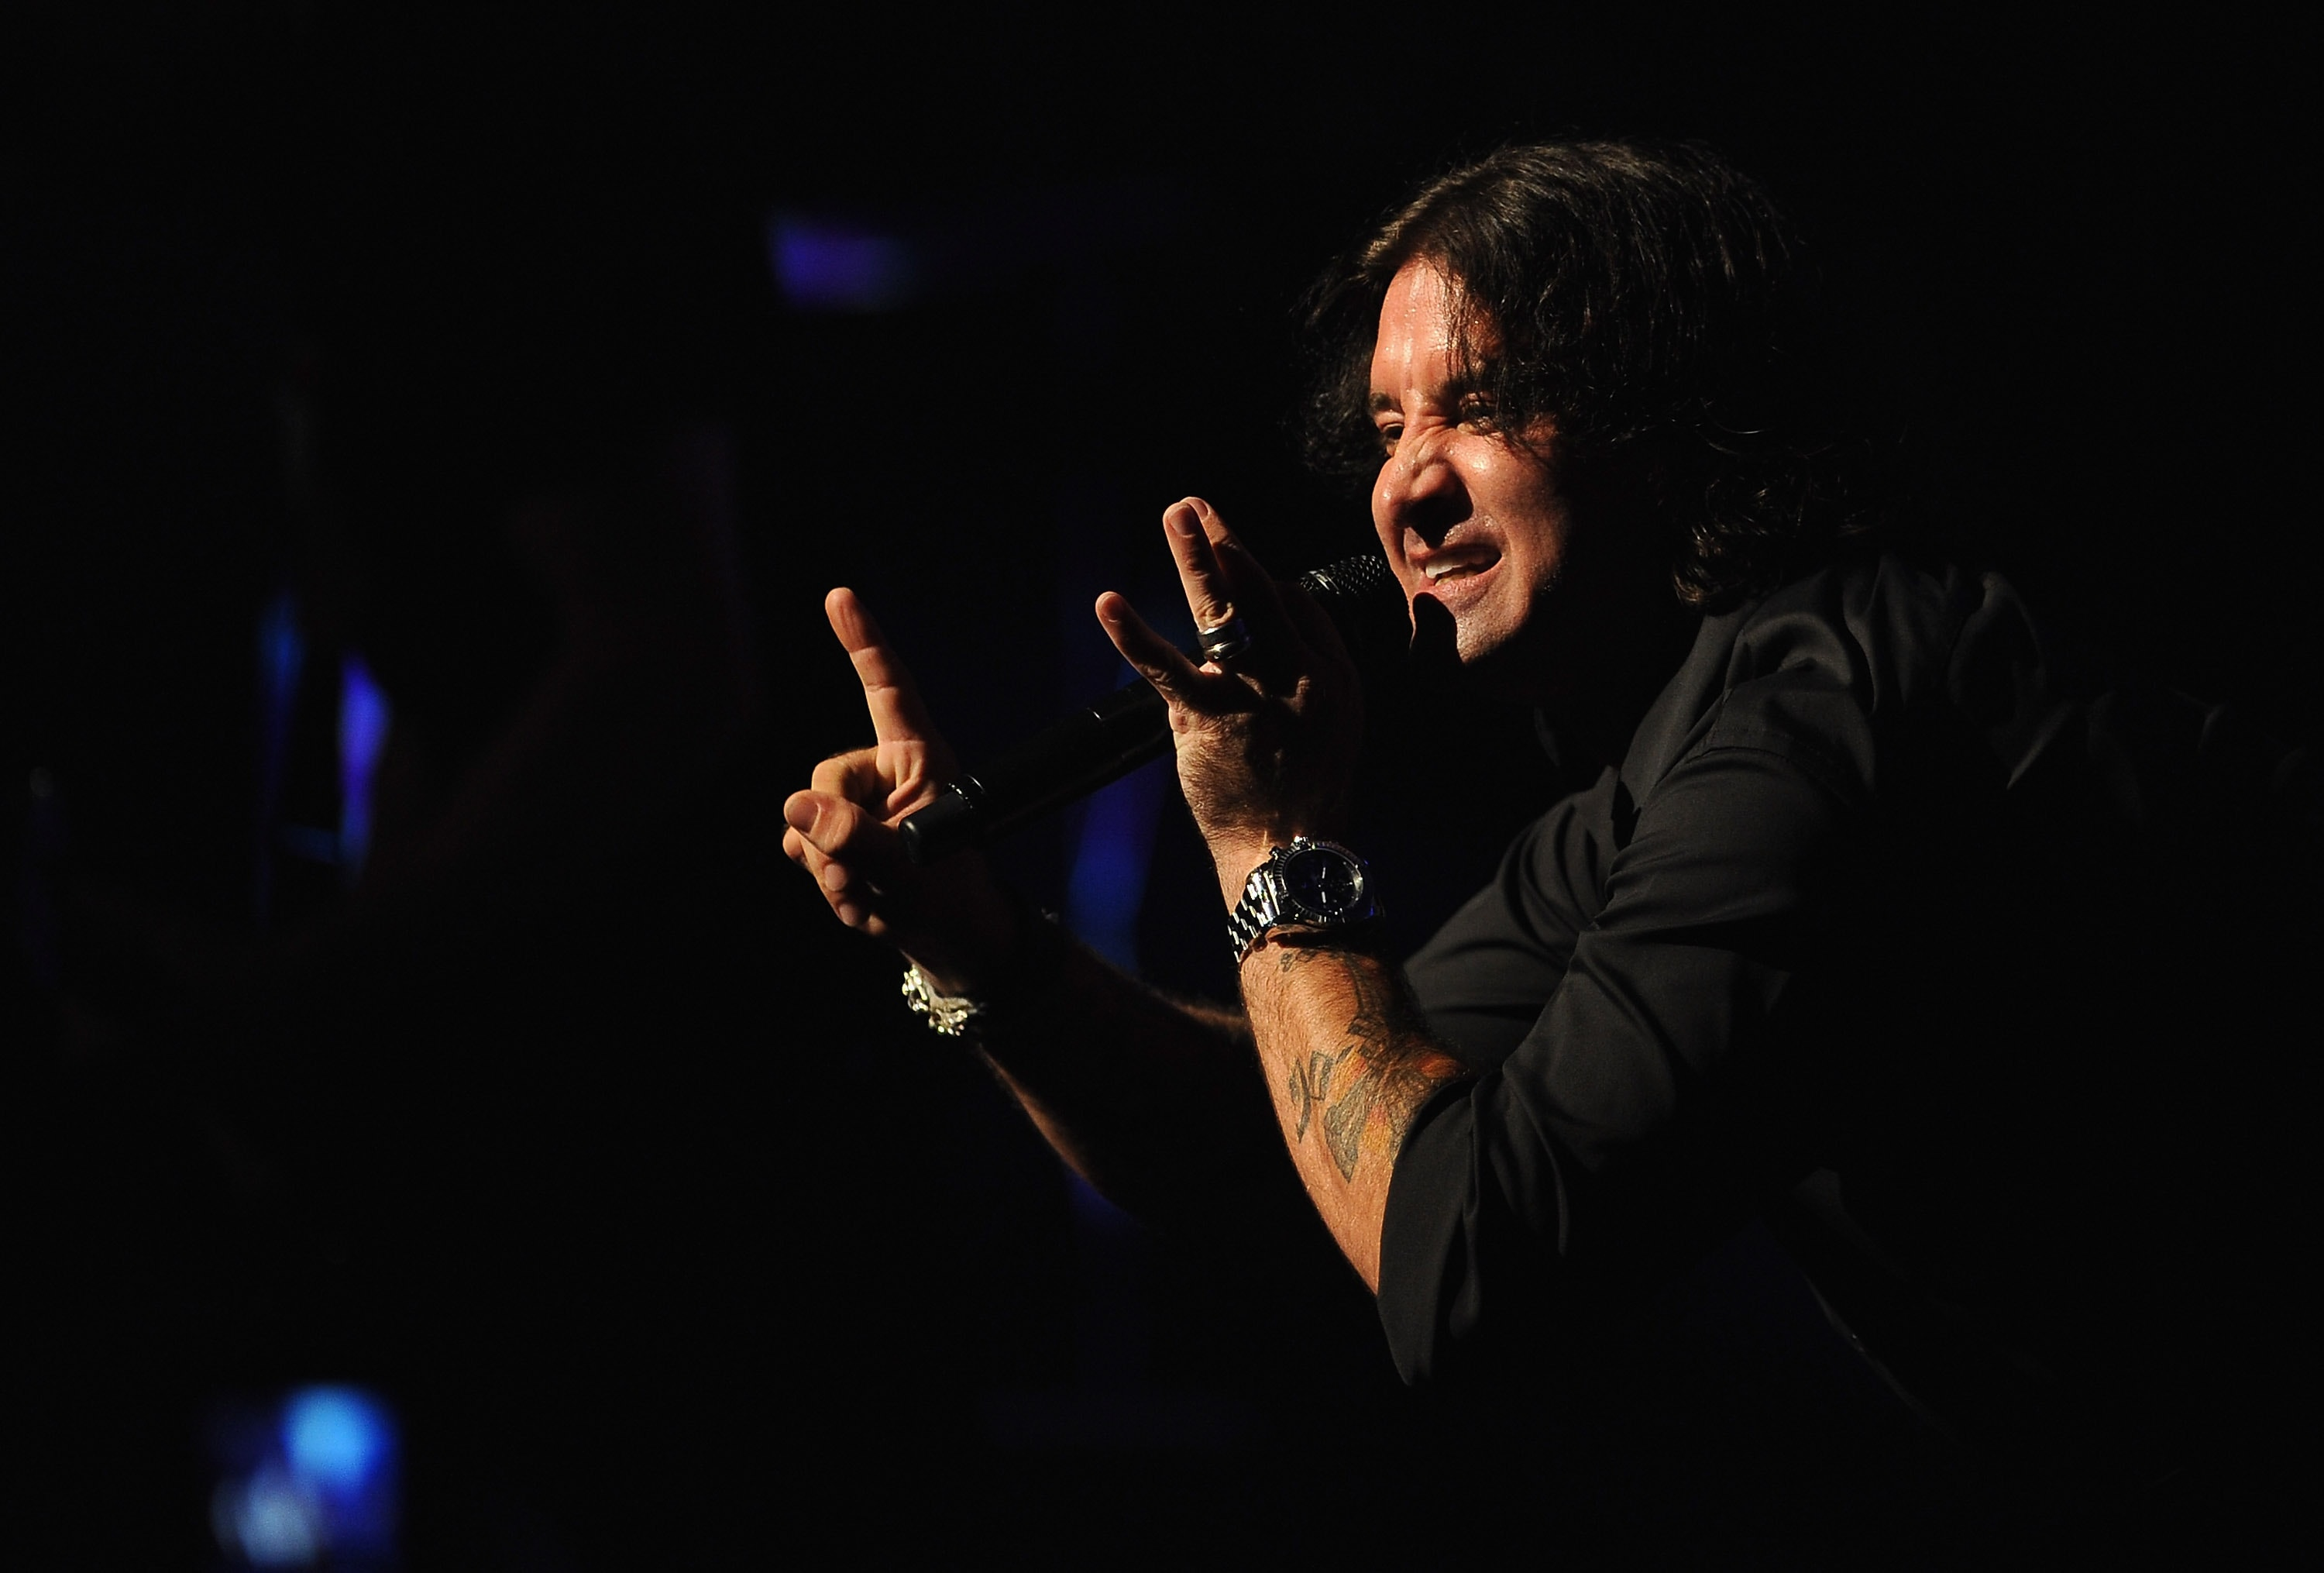 NEW YORK, NY - APRIL 20: Creed's lead singer Scott Stapp performs onstage at the Beacon Theatre on April 20, 2012 in New York City.